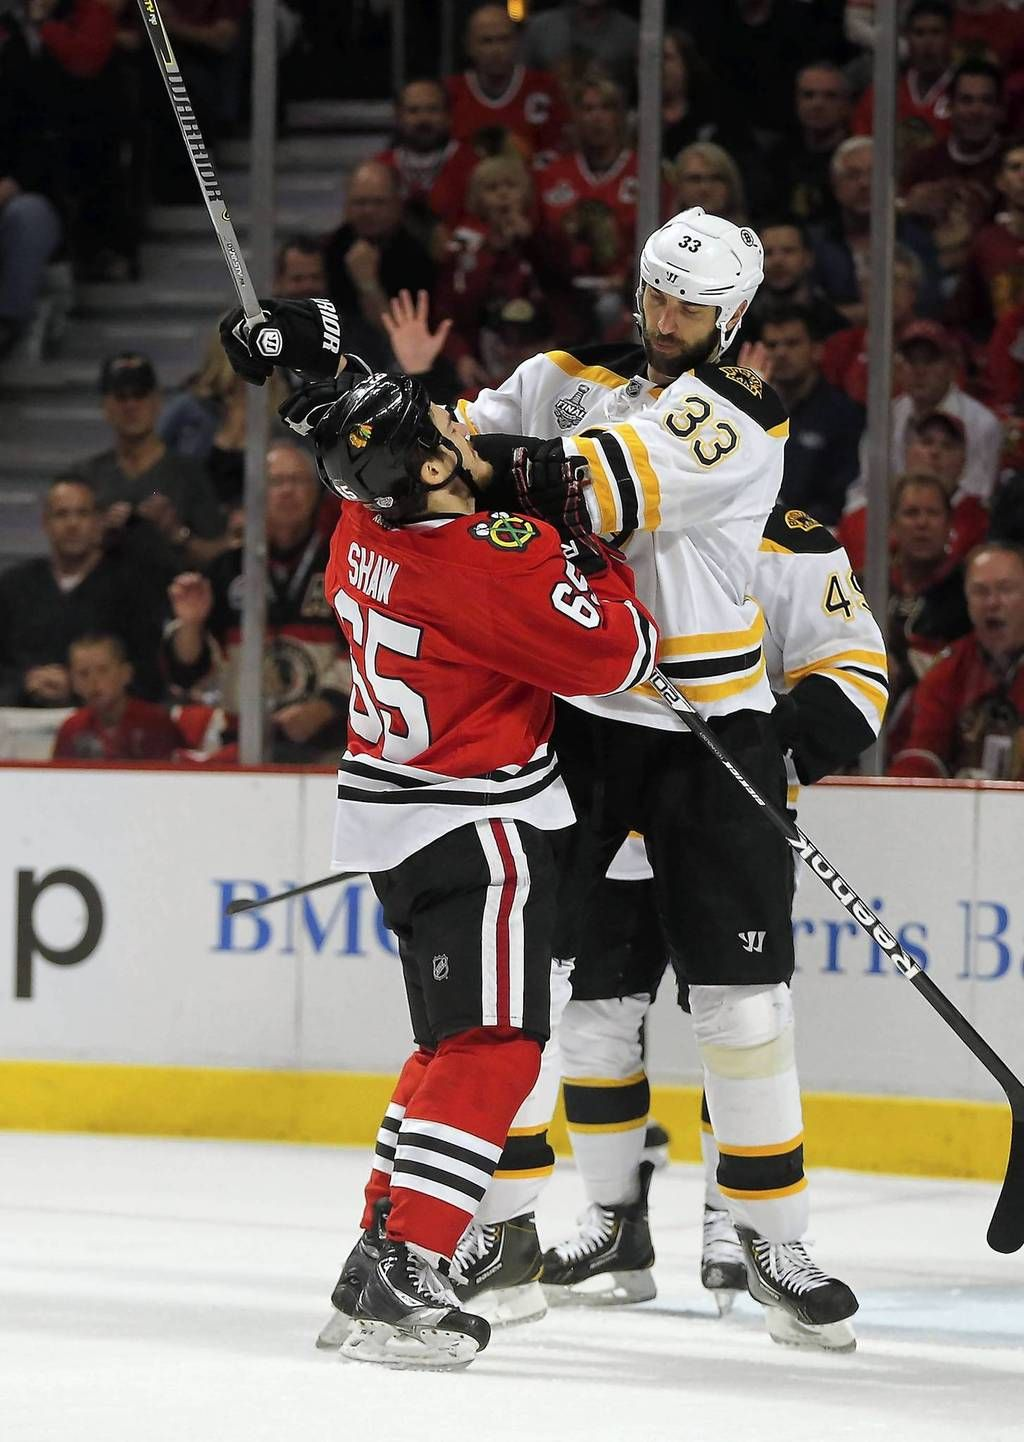 d66537028 Andrew Shaw takes a shove from the much larger Bruins defenseman Zdeno  Chara in the first period...Sure Claude